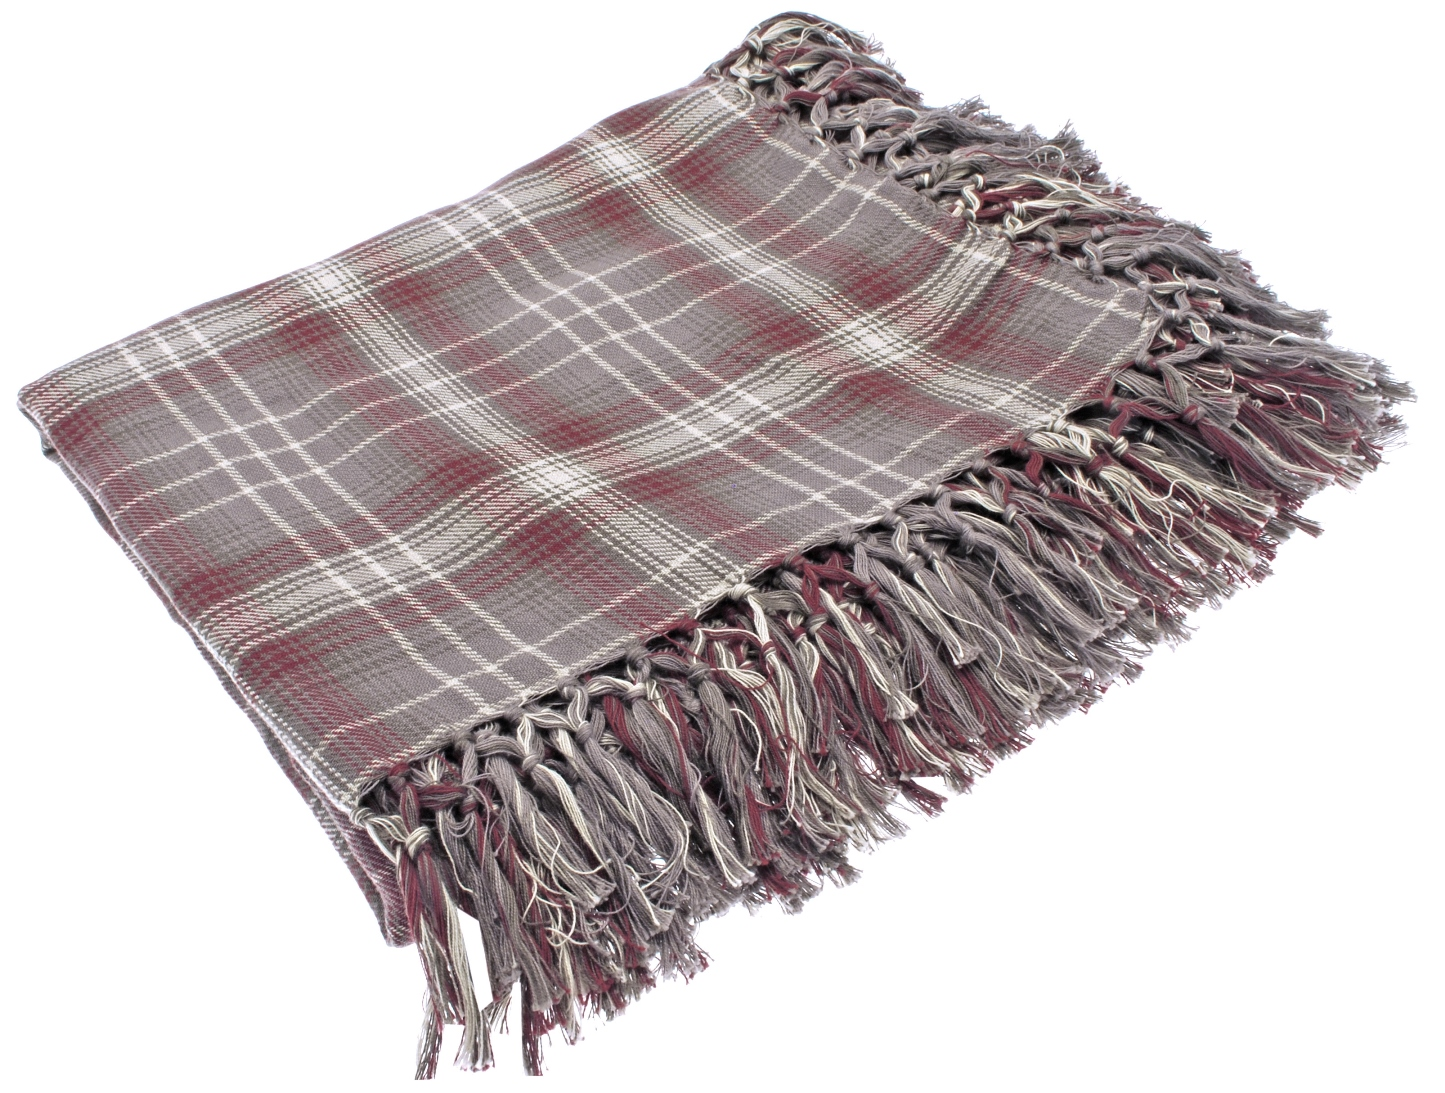 Glencoe Throw  137 x 178 cm  € 38  Product Code: WAL-GCT